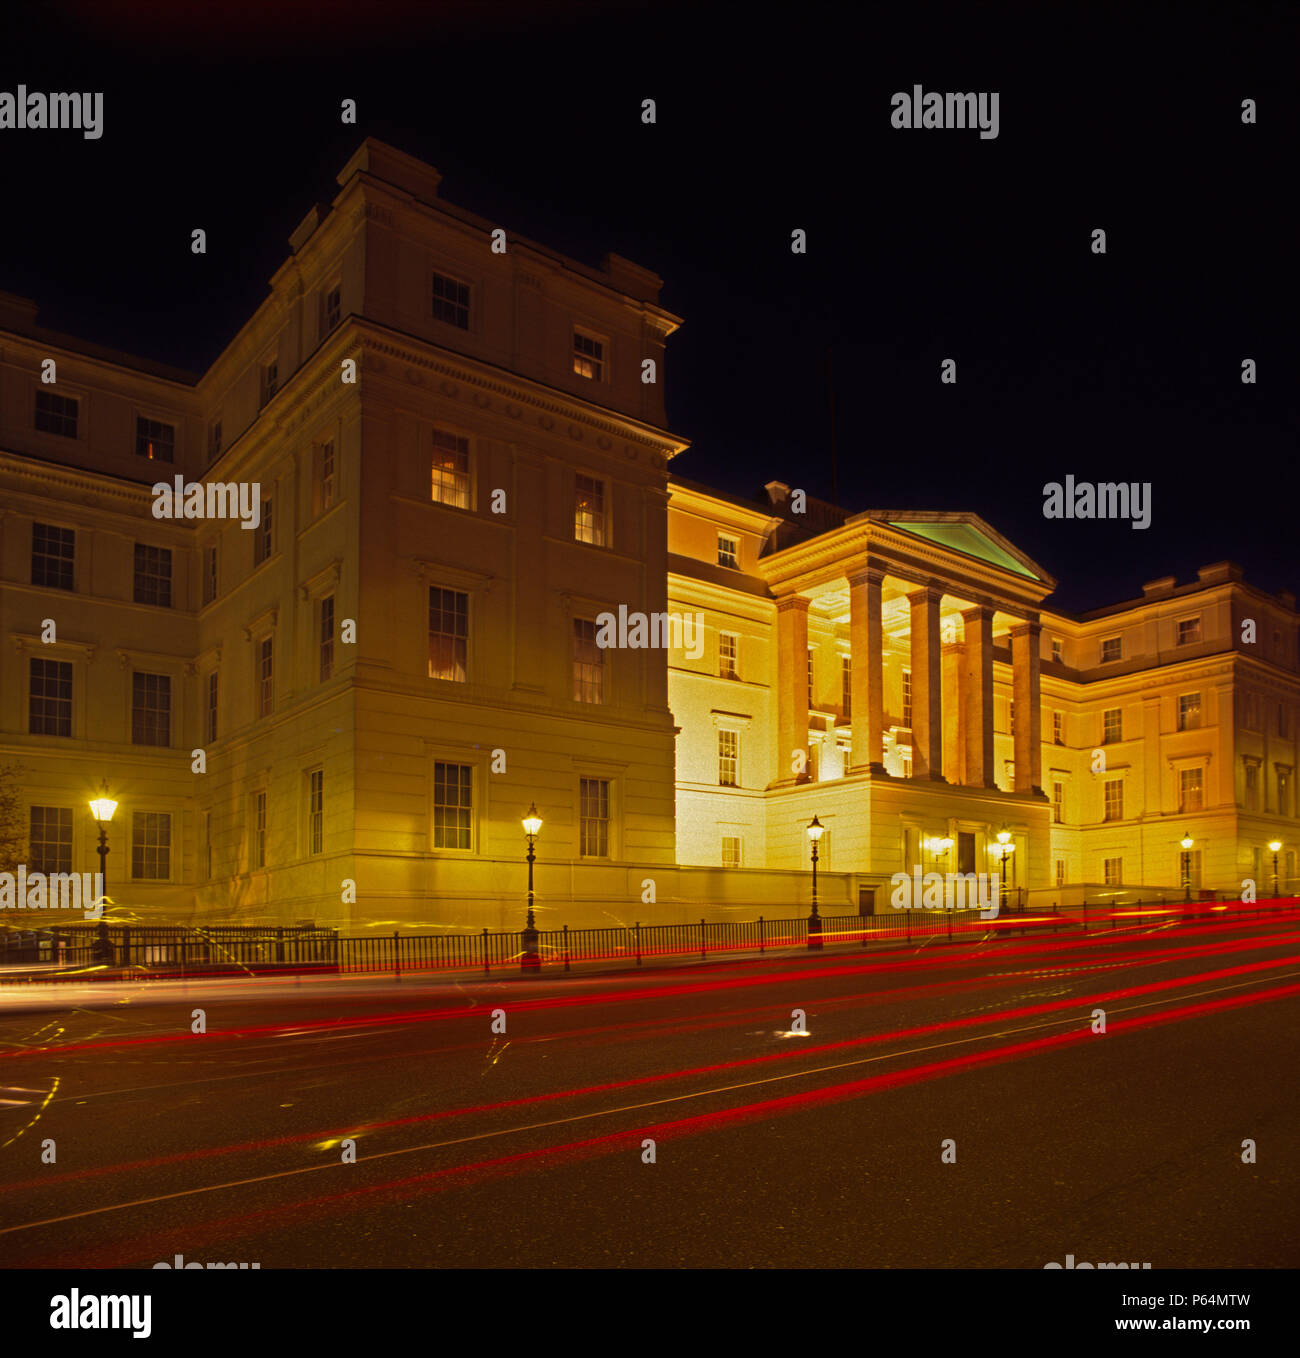 Lanesborough Hotel, London at dusk, UK - Stock Image